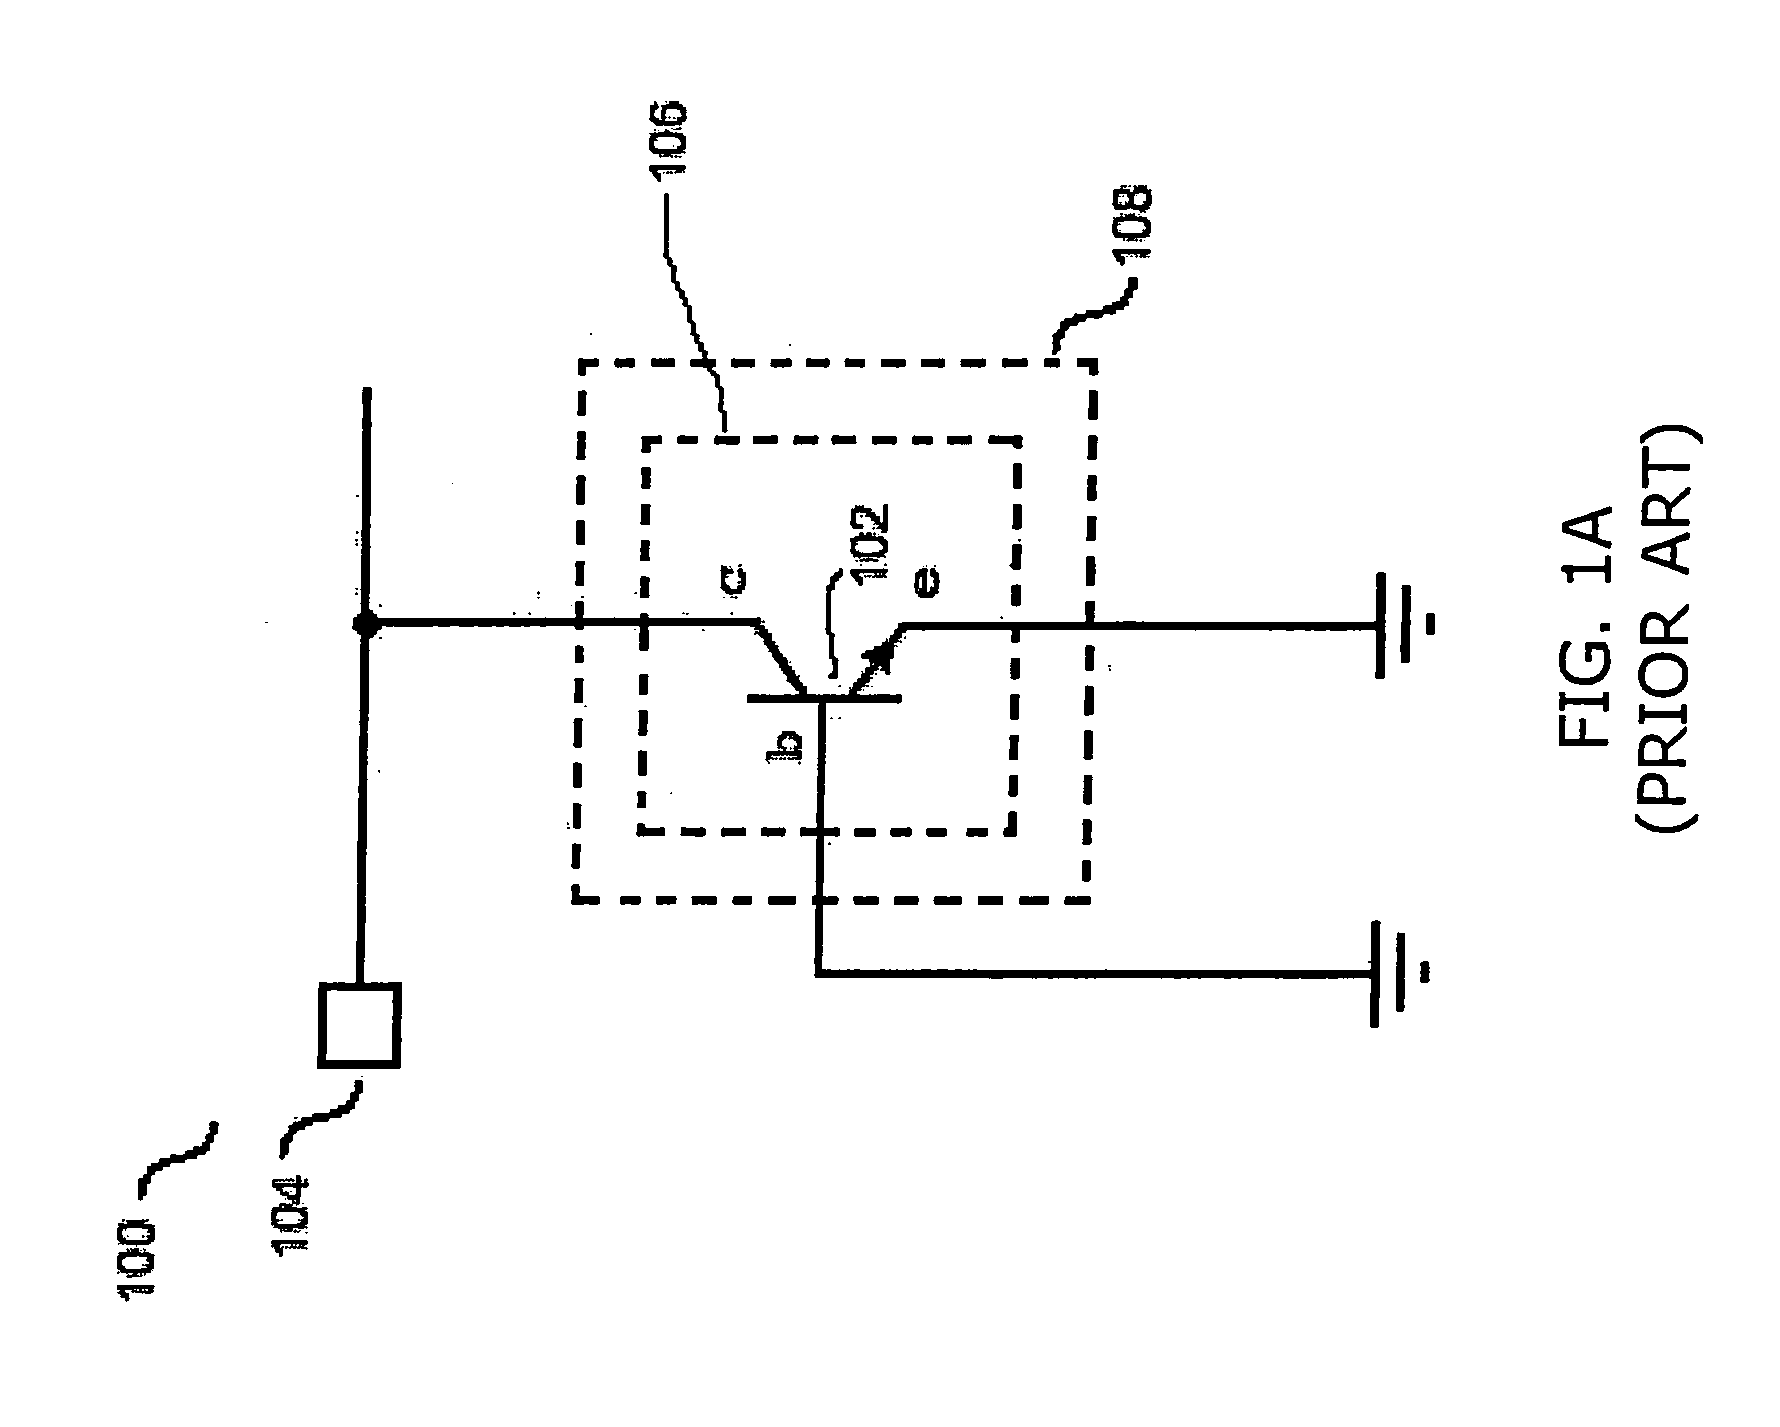 silicon controlled rectifier scr is a semiconductor device used in